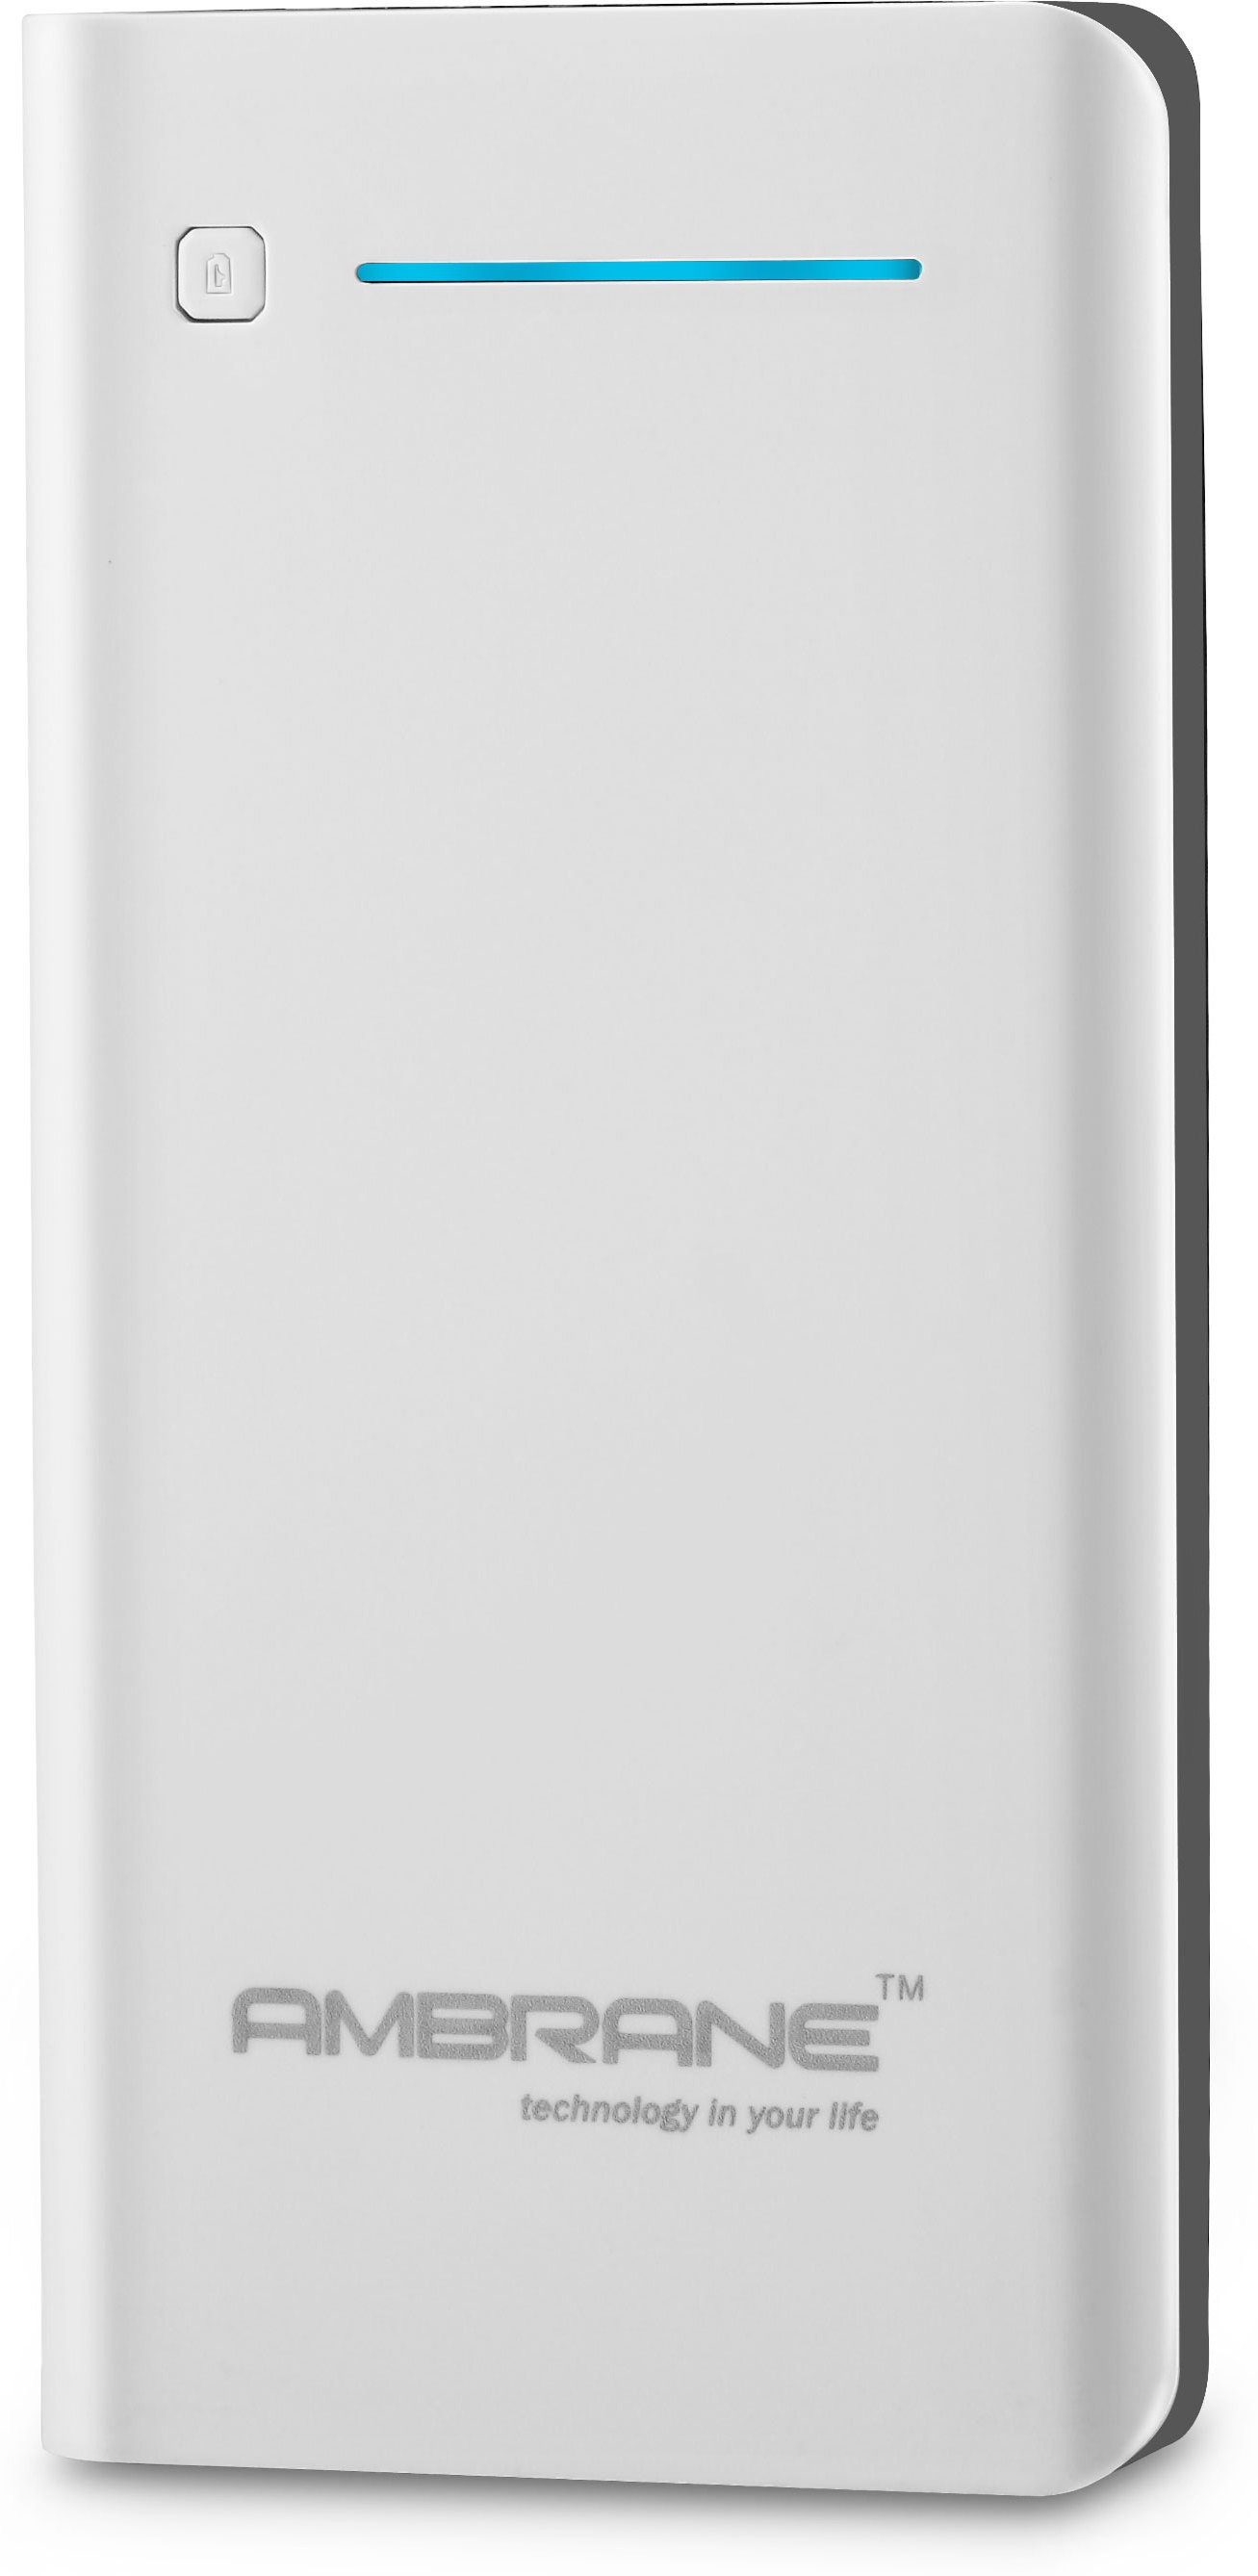 Deals | Ambrane 2,200-20,800 mAh Power Banks